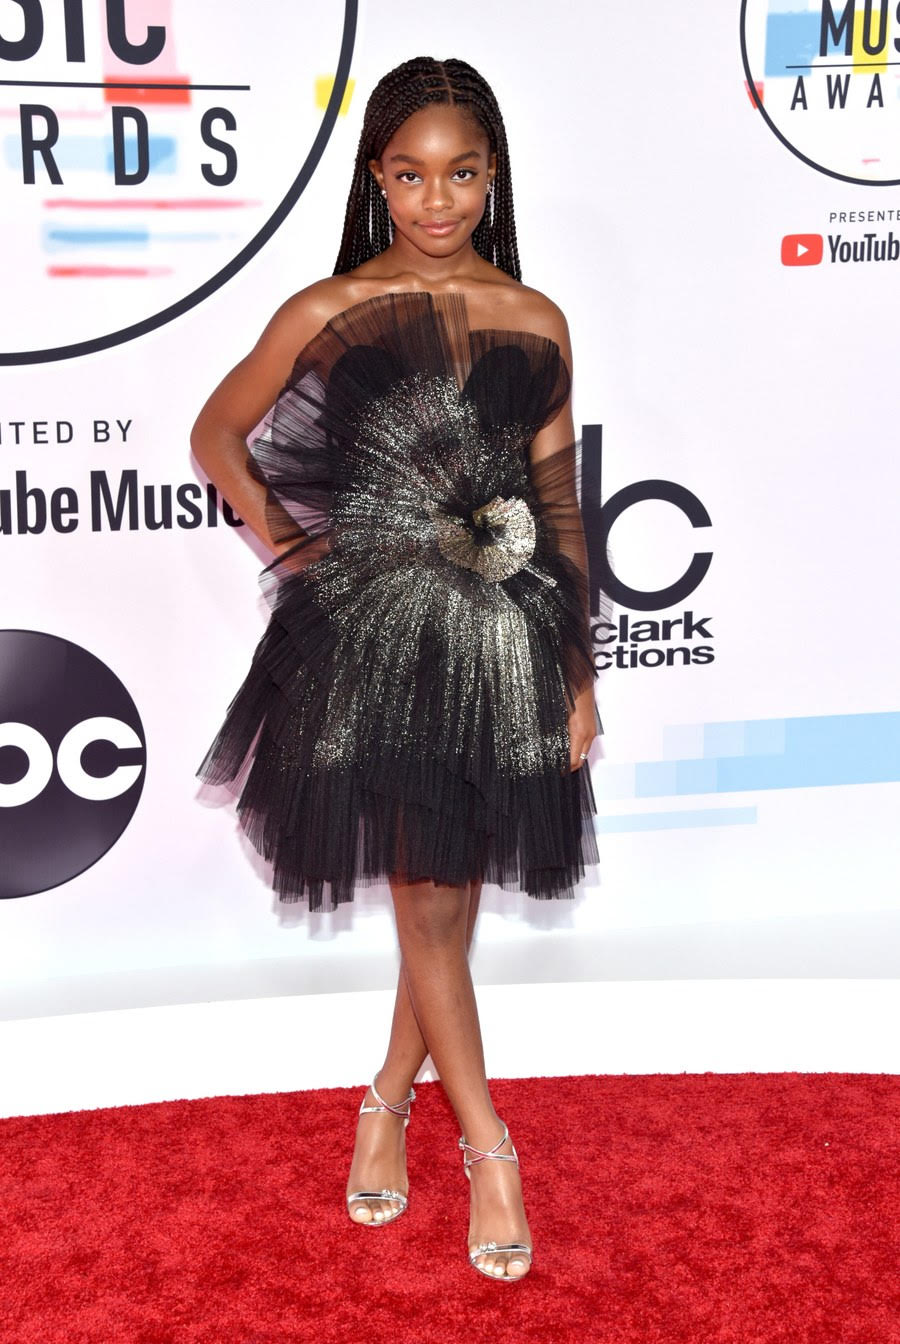 Marsai Martin attends the 2018 American Music Awards